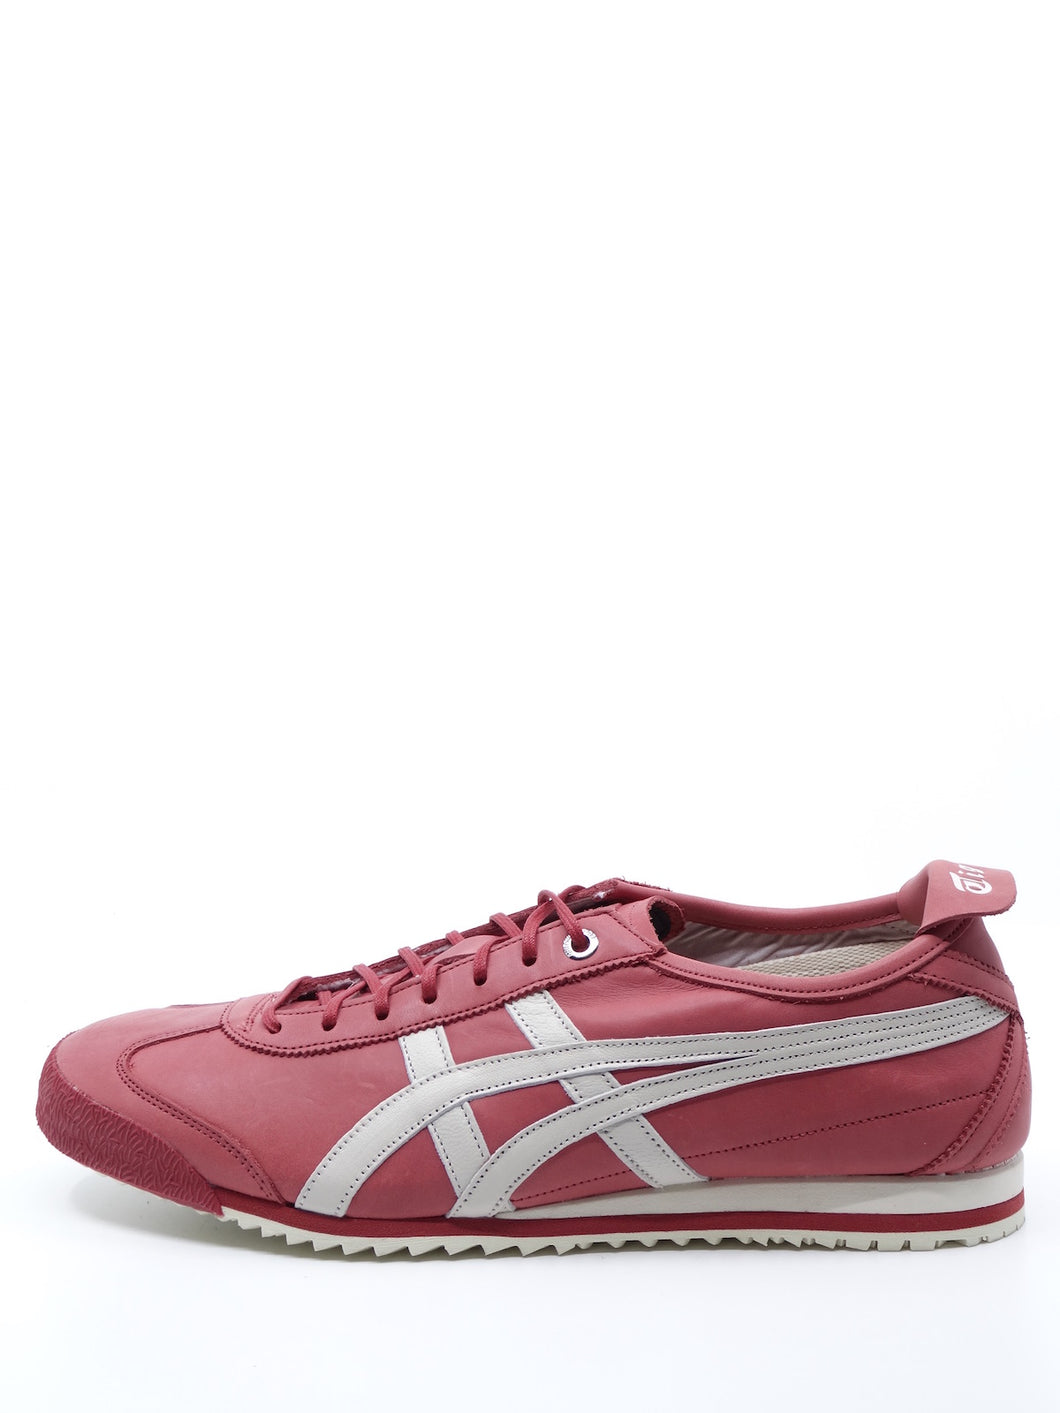 Onitsuka Tigers Mexico 66 SD Burnt Red / Oatmeal